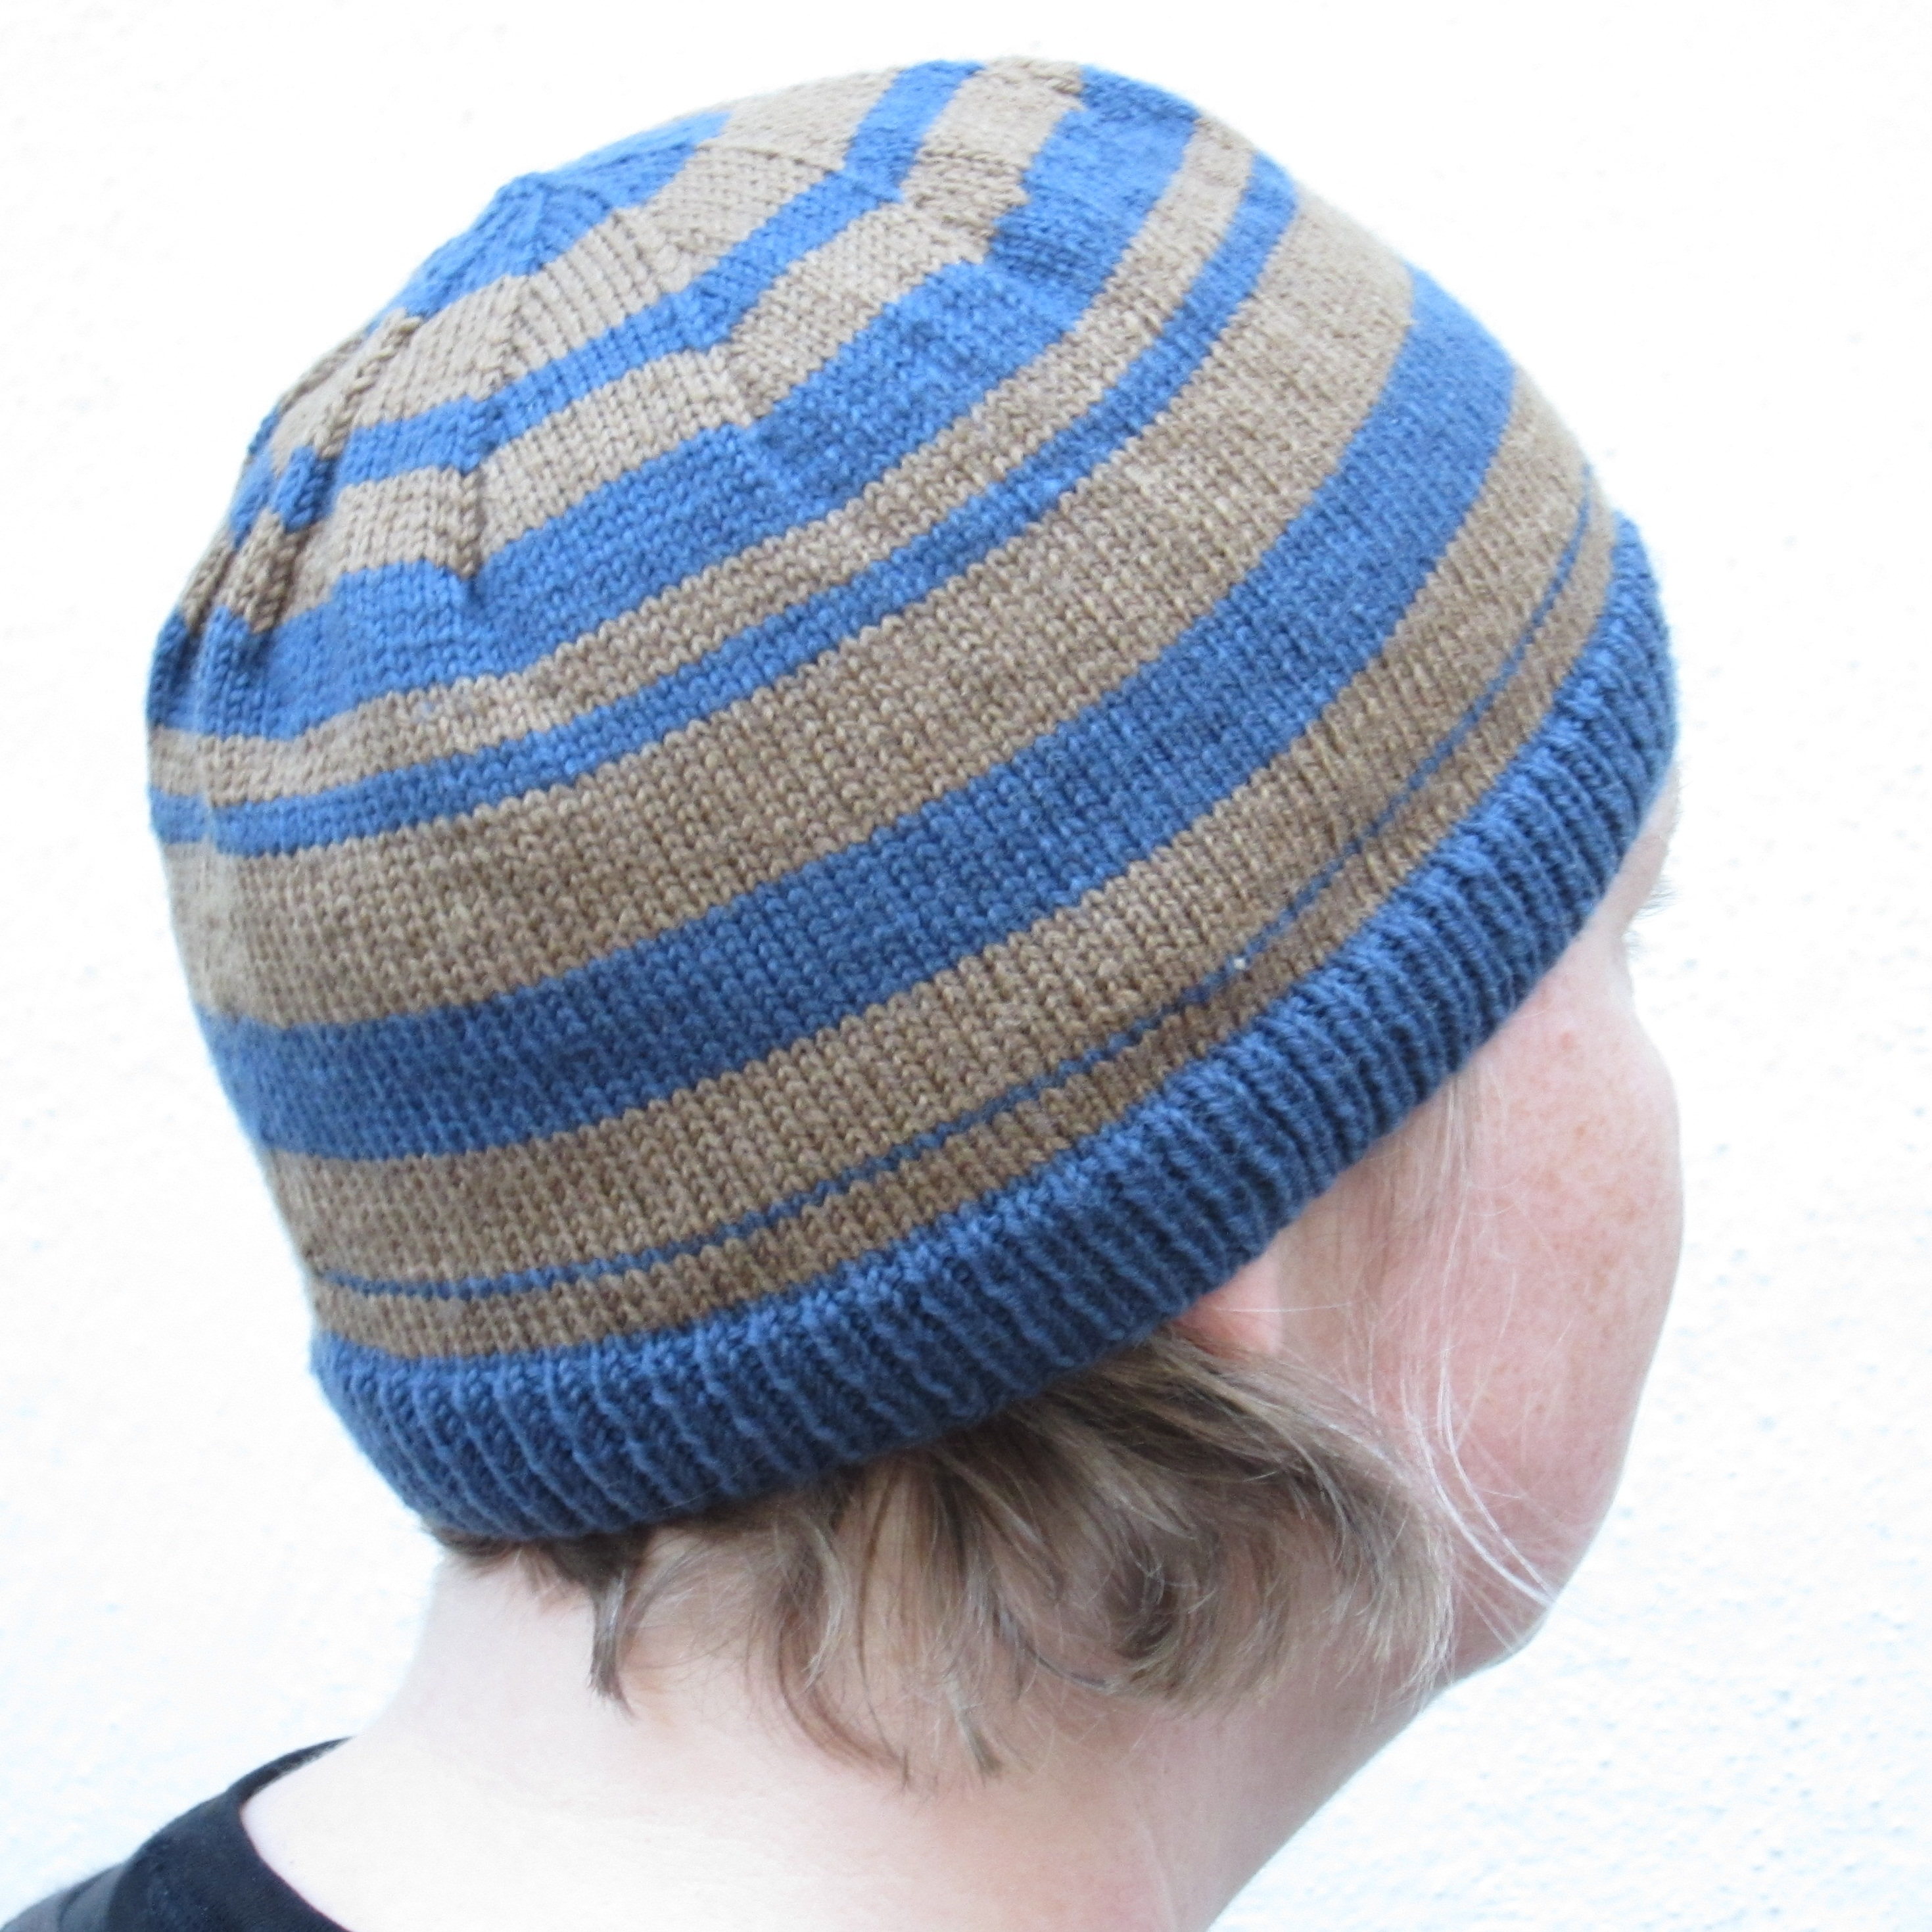 Knitting Patterns For Hats : Random Factor Hat   Quick Free Knitting Pattern